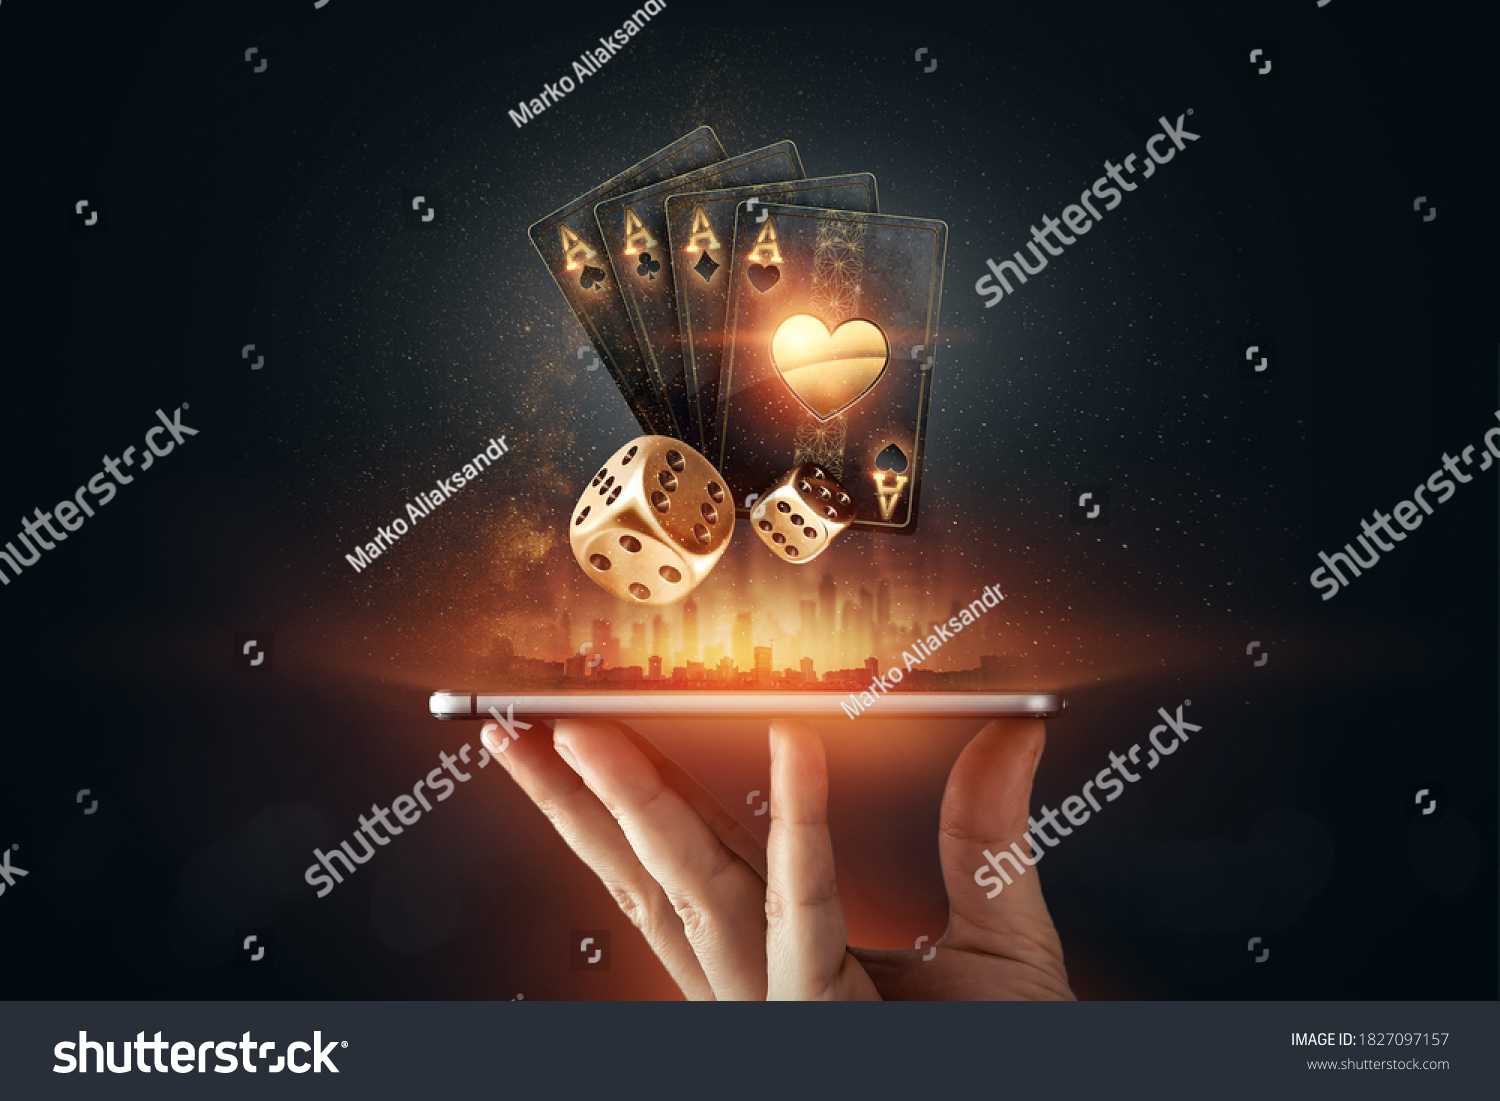 Creative background, online casino, in a man's hand a smartphone with playing cards, roulette and chips, black-gold background. Internet gambling concept. Copy space. #1827097157